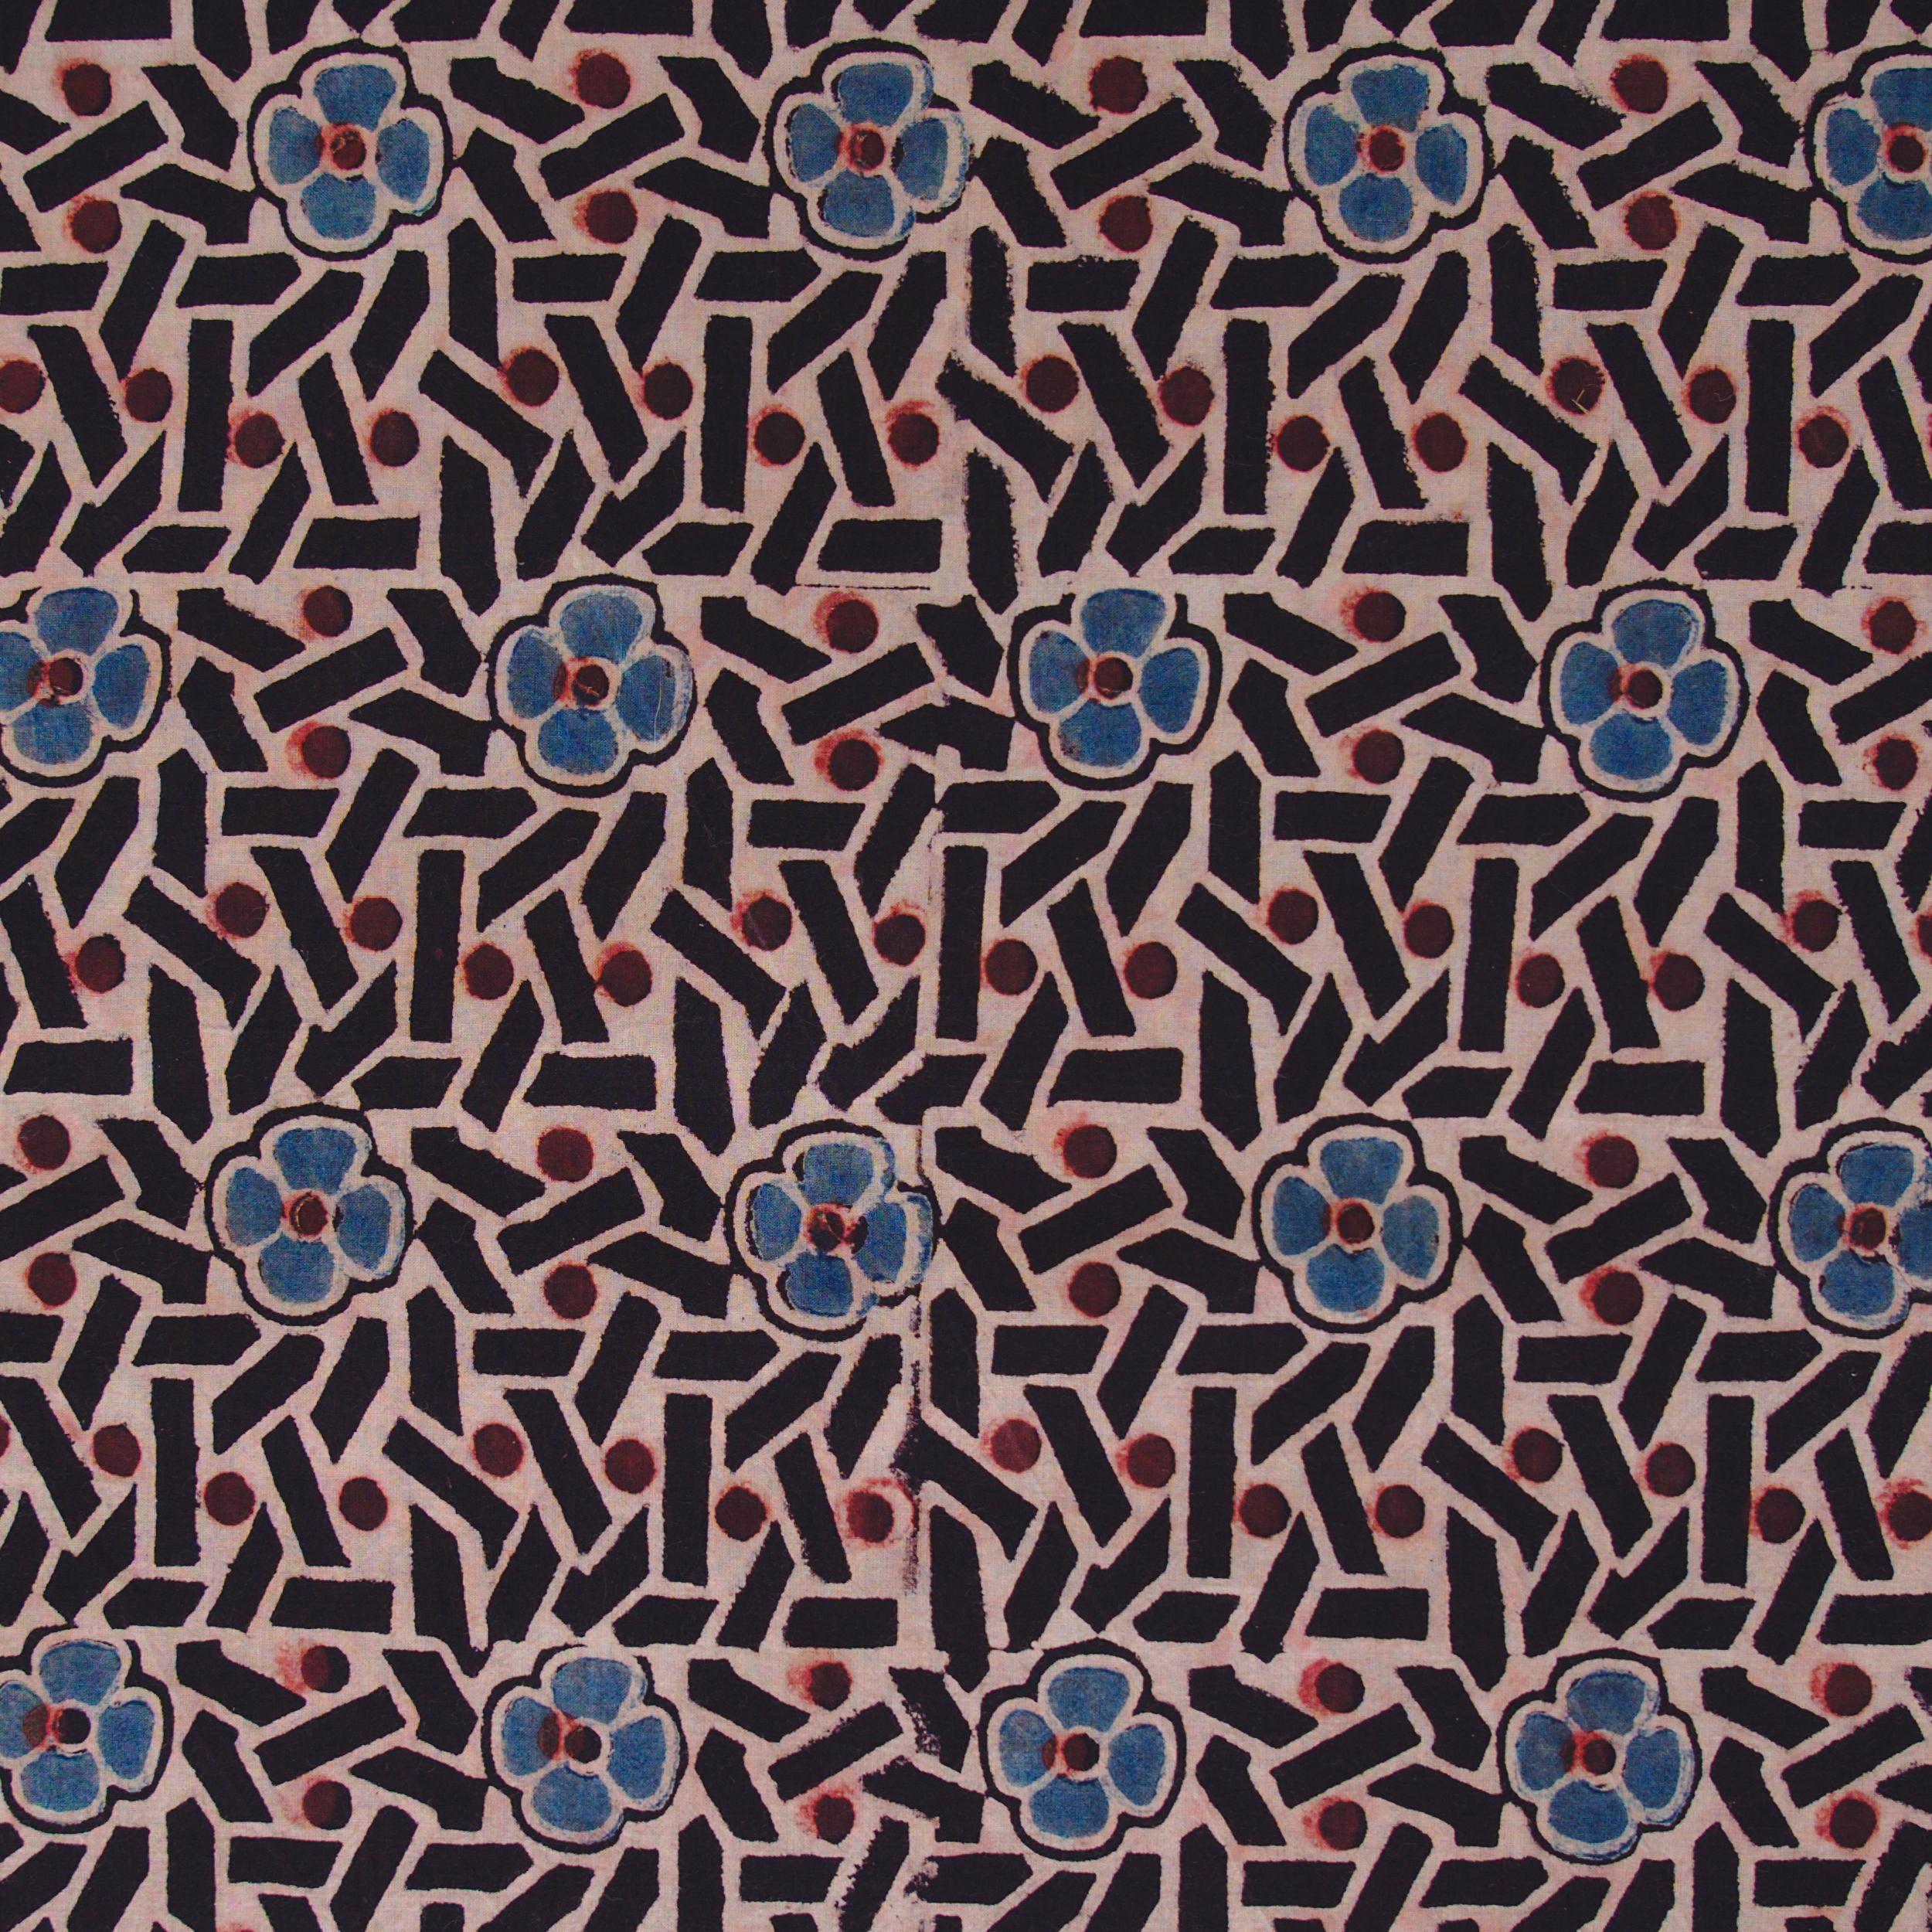 SIK35 - Indian Block-Printed Cotton - Sticks & Stones Design - Indigo, Red & Black Dye - Flat